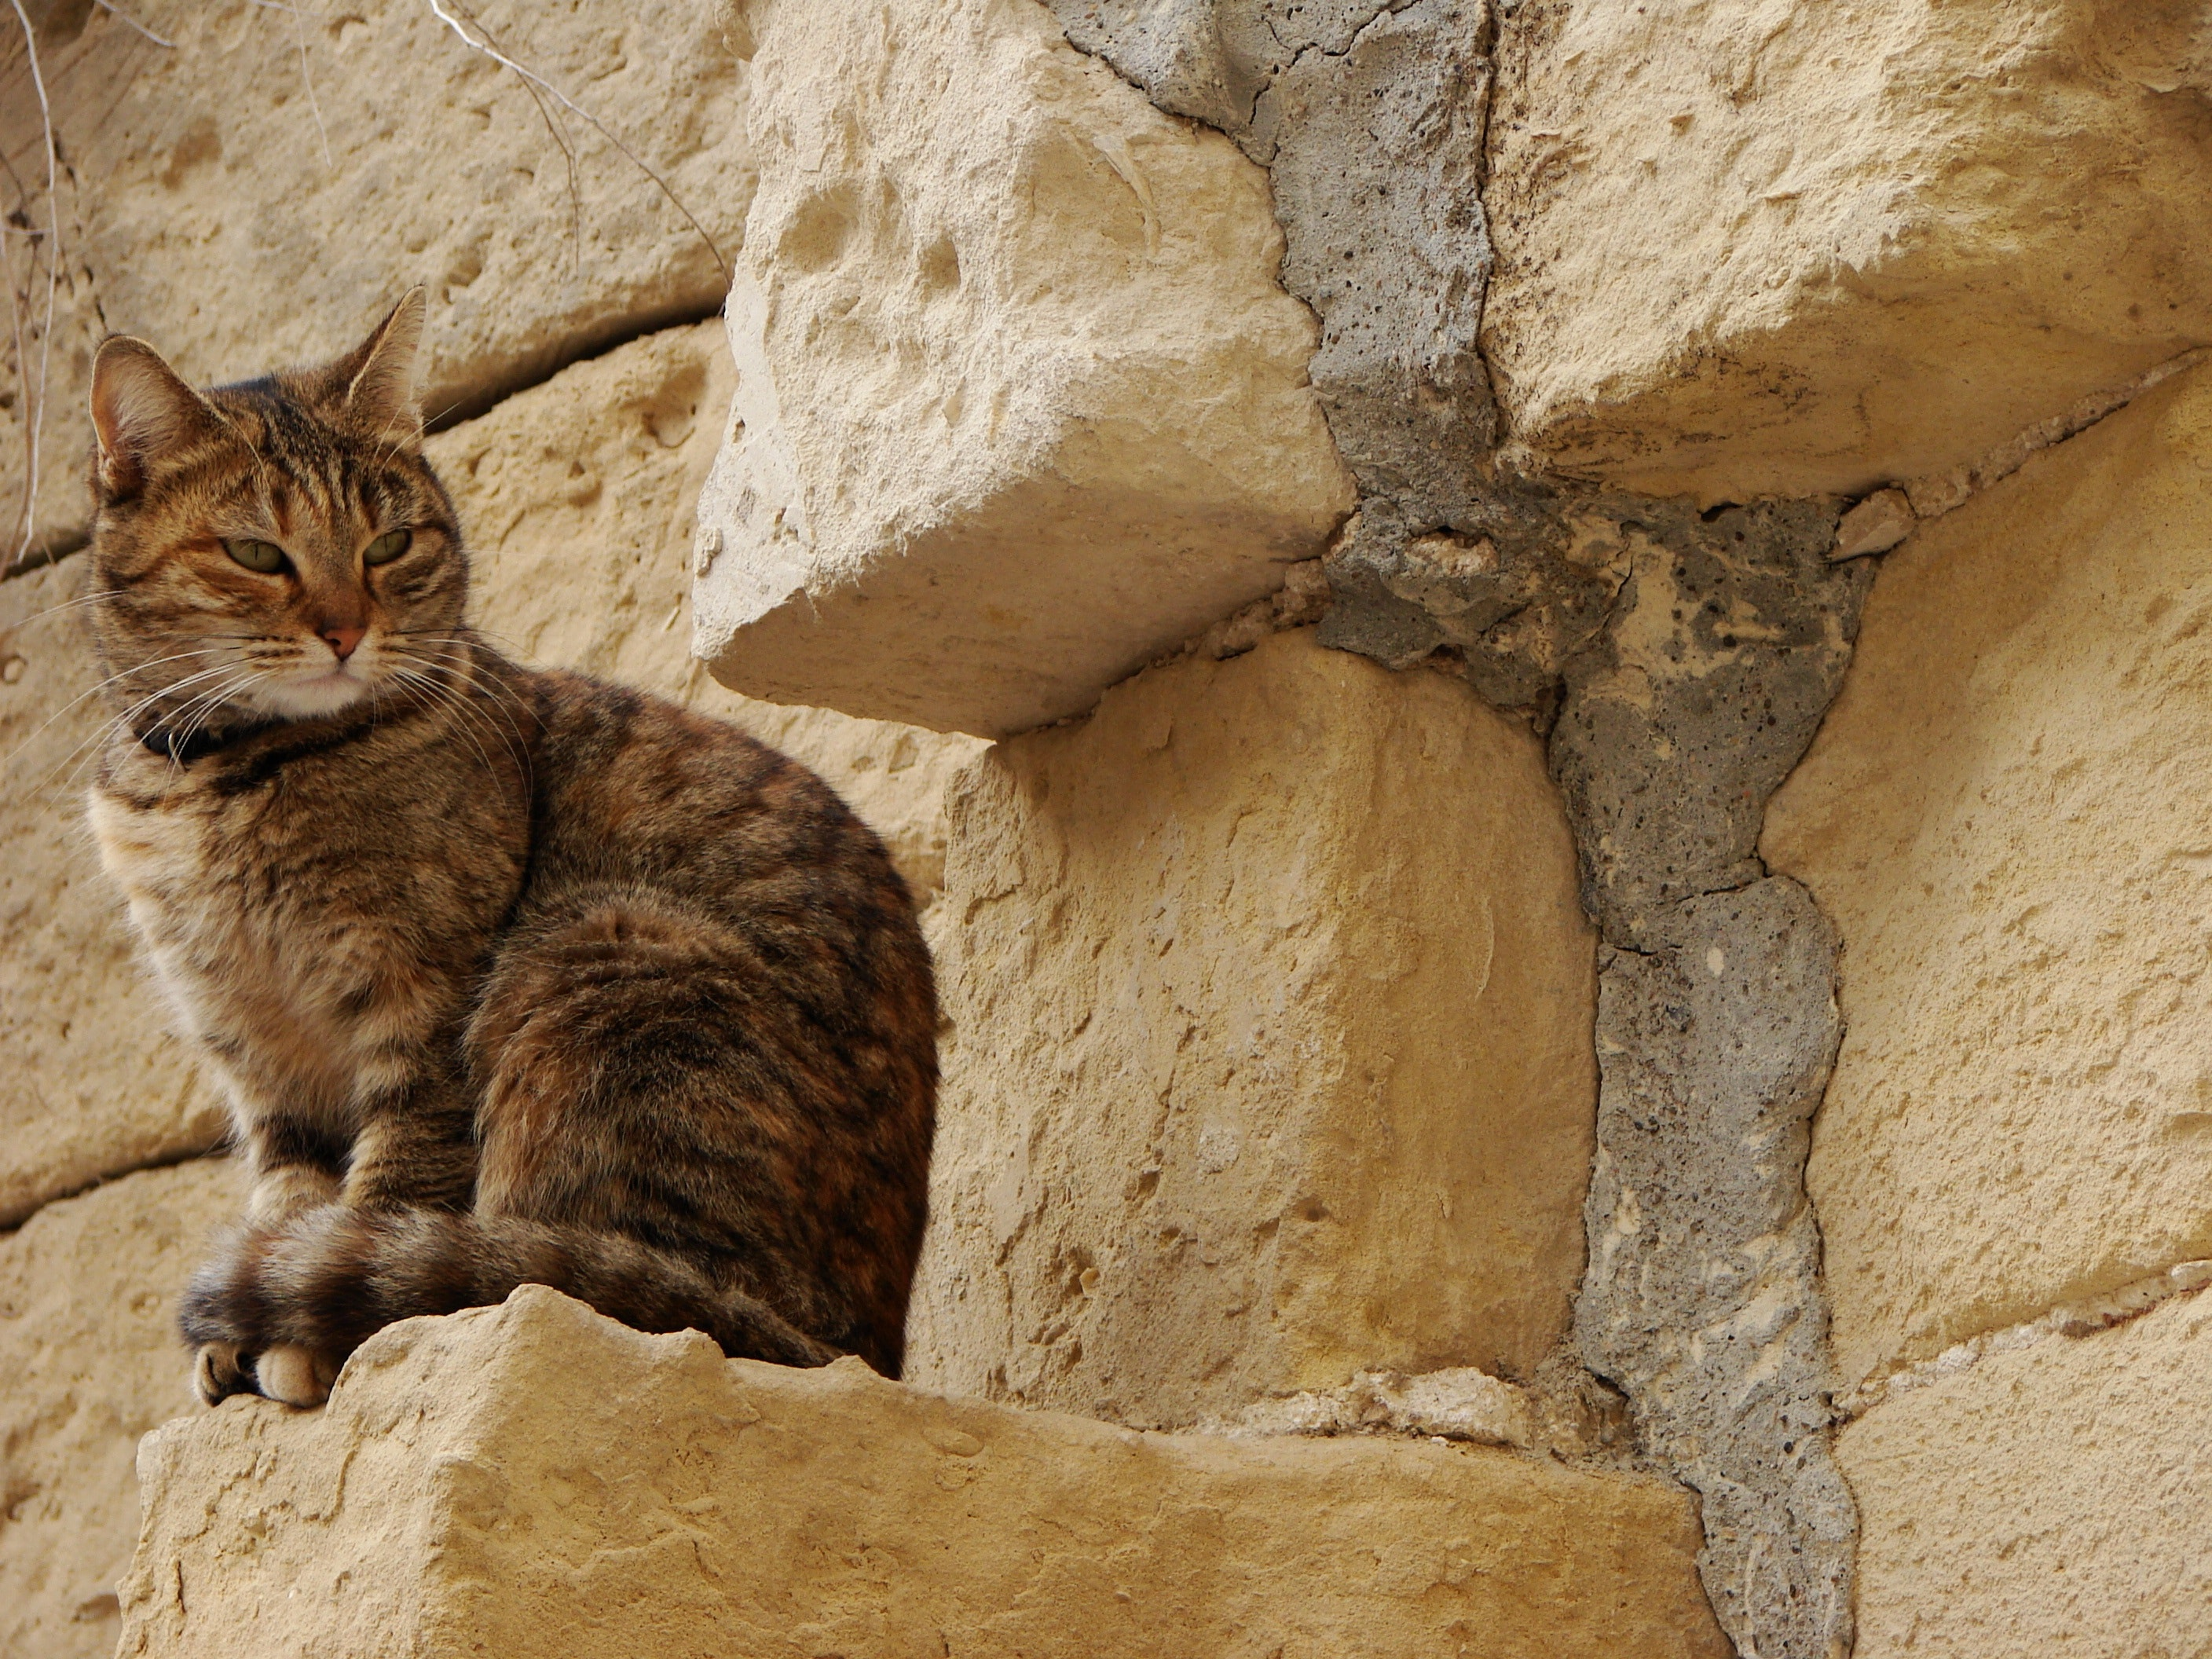 Brown and Black Tabby Cat, Adorable, Limestone, Tabby, Stripe, HQ Photo